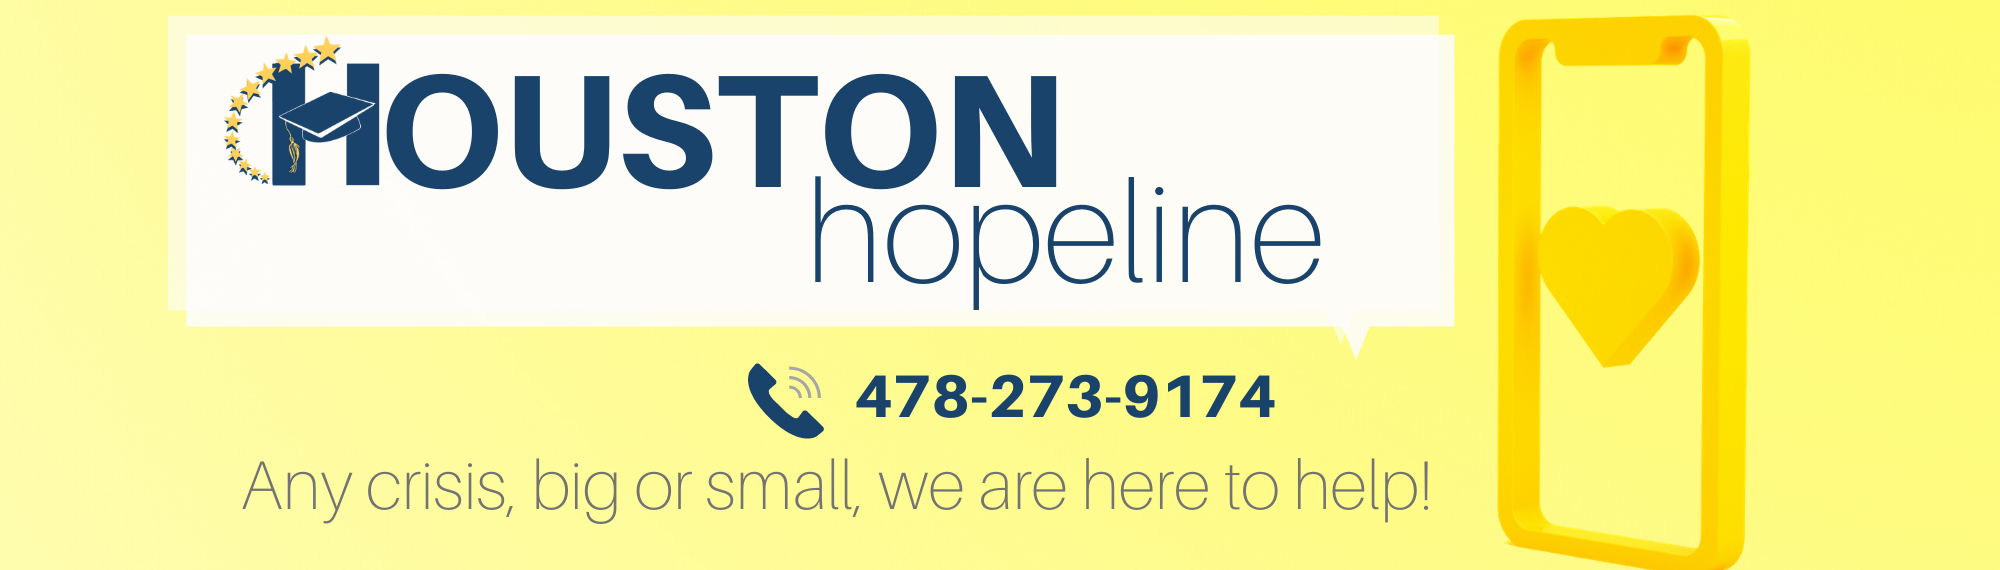 Houston Hopeline  478-273-9174